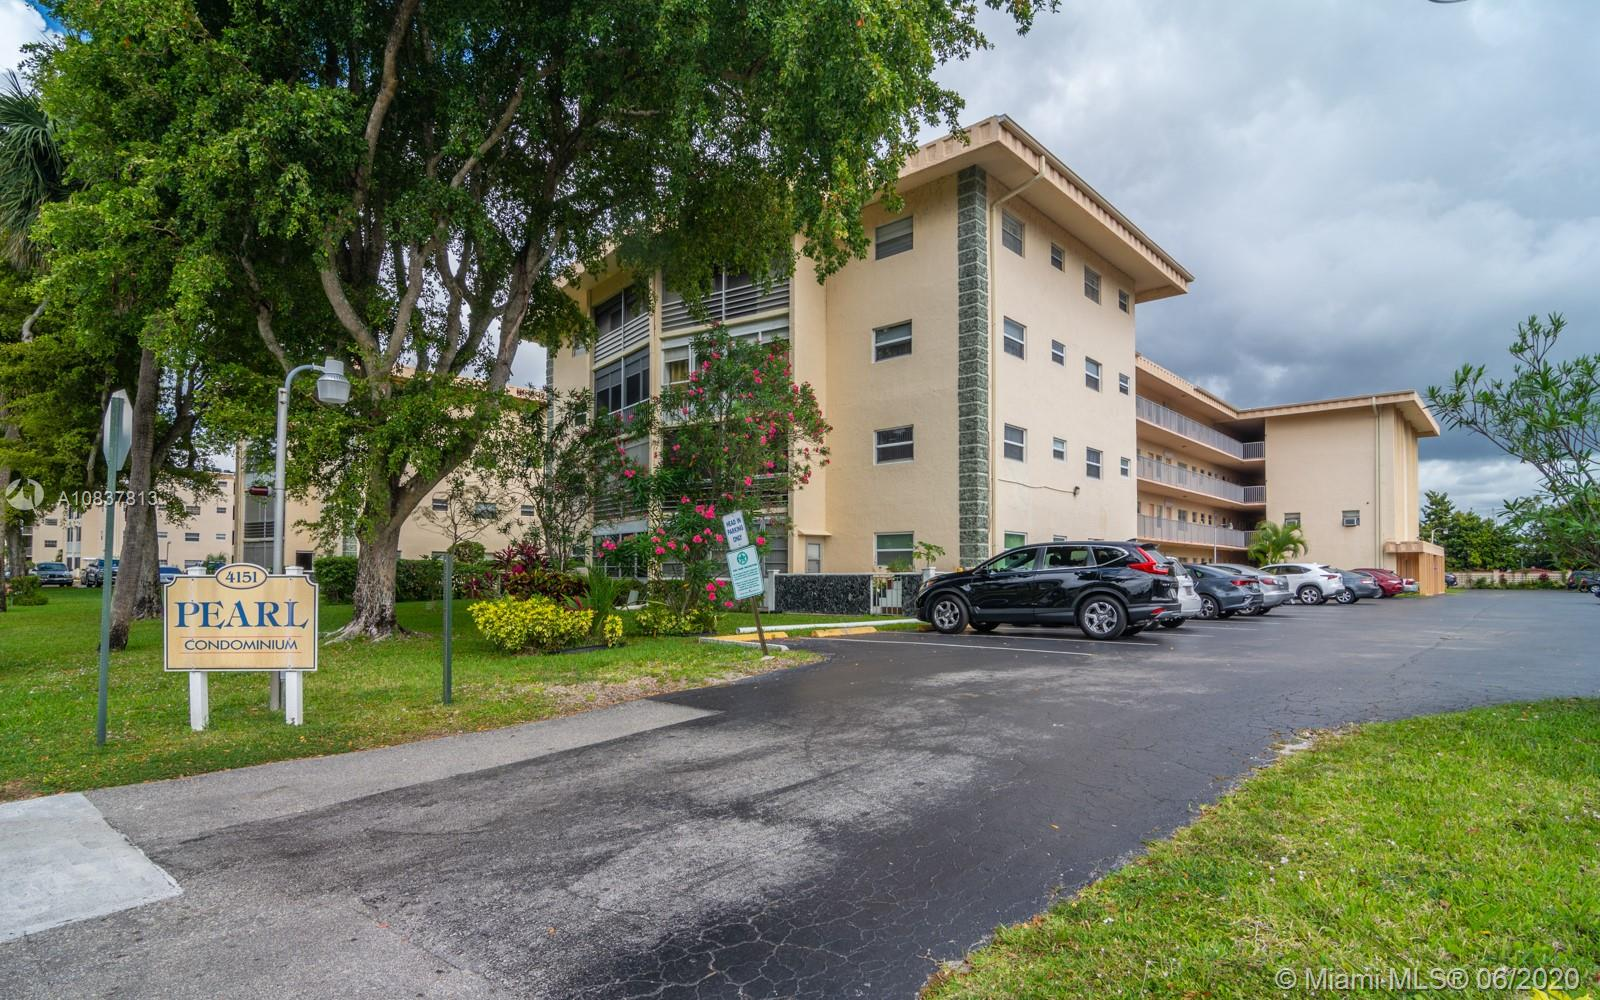 2 BEDROOM, 2 BATHROOM CORNER UNIT CONDO, BRIGHT AND SPACIOUS, LAMINATE FLOORING IN LIVING AND BEDROOM, MASTER BEDROOM WITH WALK IN CLOSET, CLUB HOUSE WITH POOL, COMMUNITY ROOM, TENNIS, BBCUE. CLOSE TO RESTAURANTS AND SHOPPING.